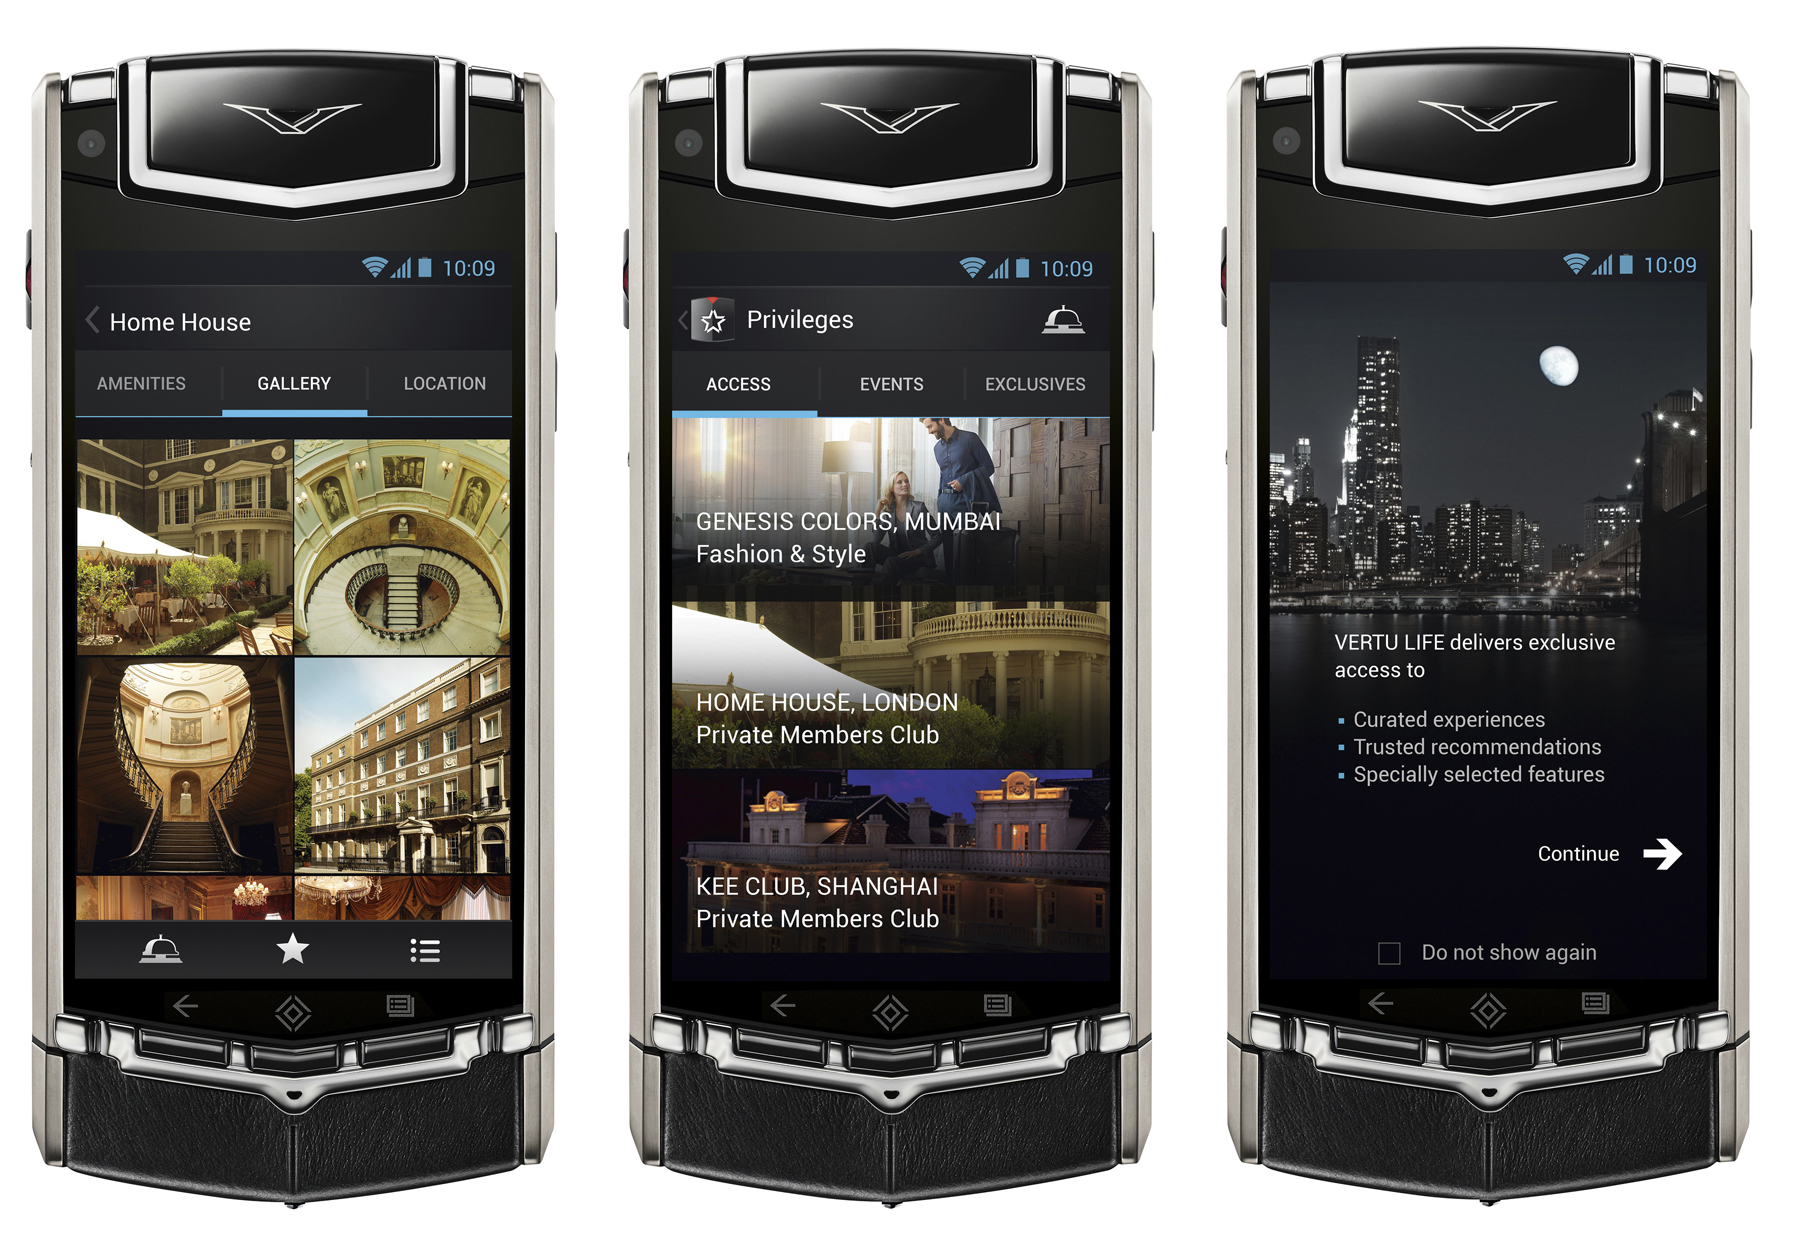 Vertu TI, Vertu, Vertu TI Red, Vertu TI Blue, Vertu TI new colors, Vertu TI availability, Vertu TI price, Virtu Android, Virtue specs (7)